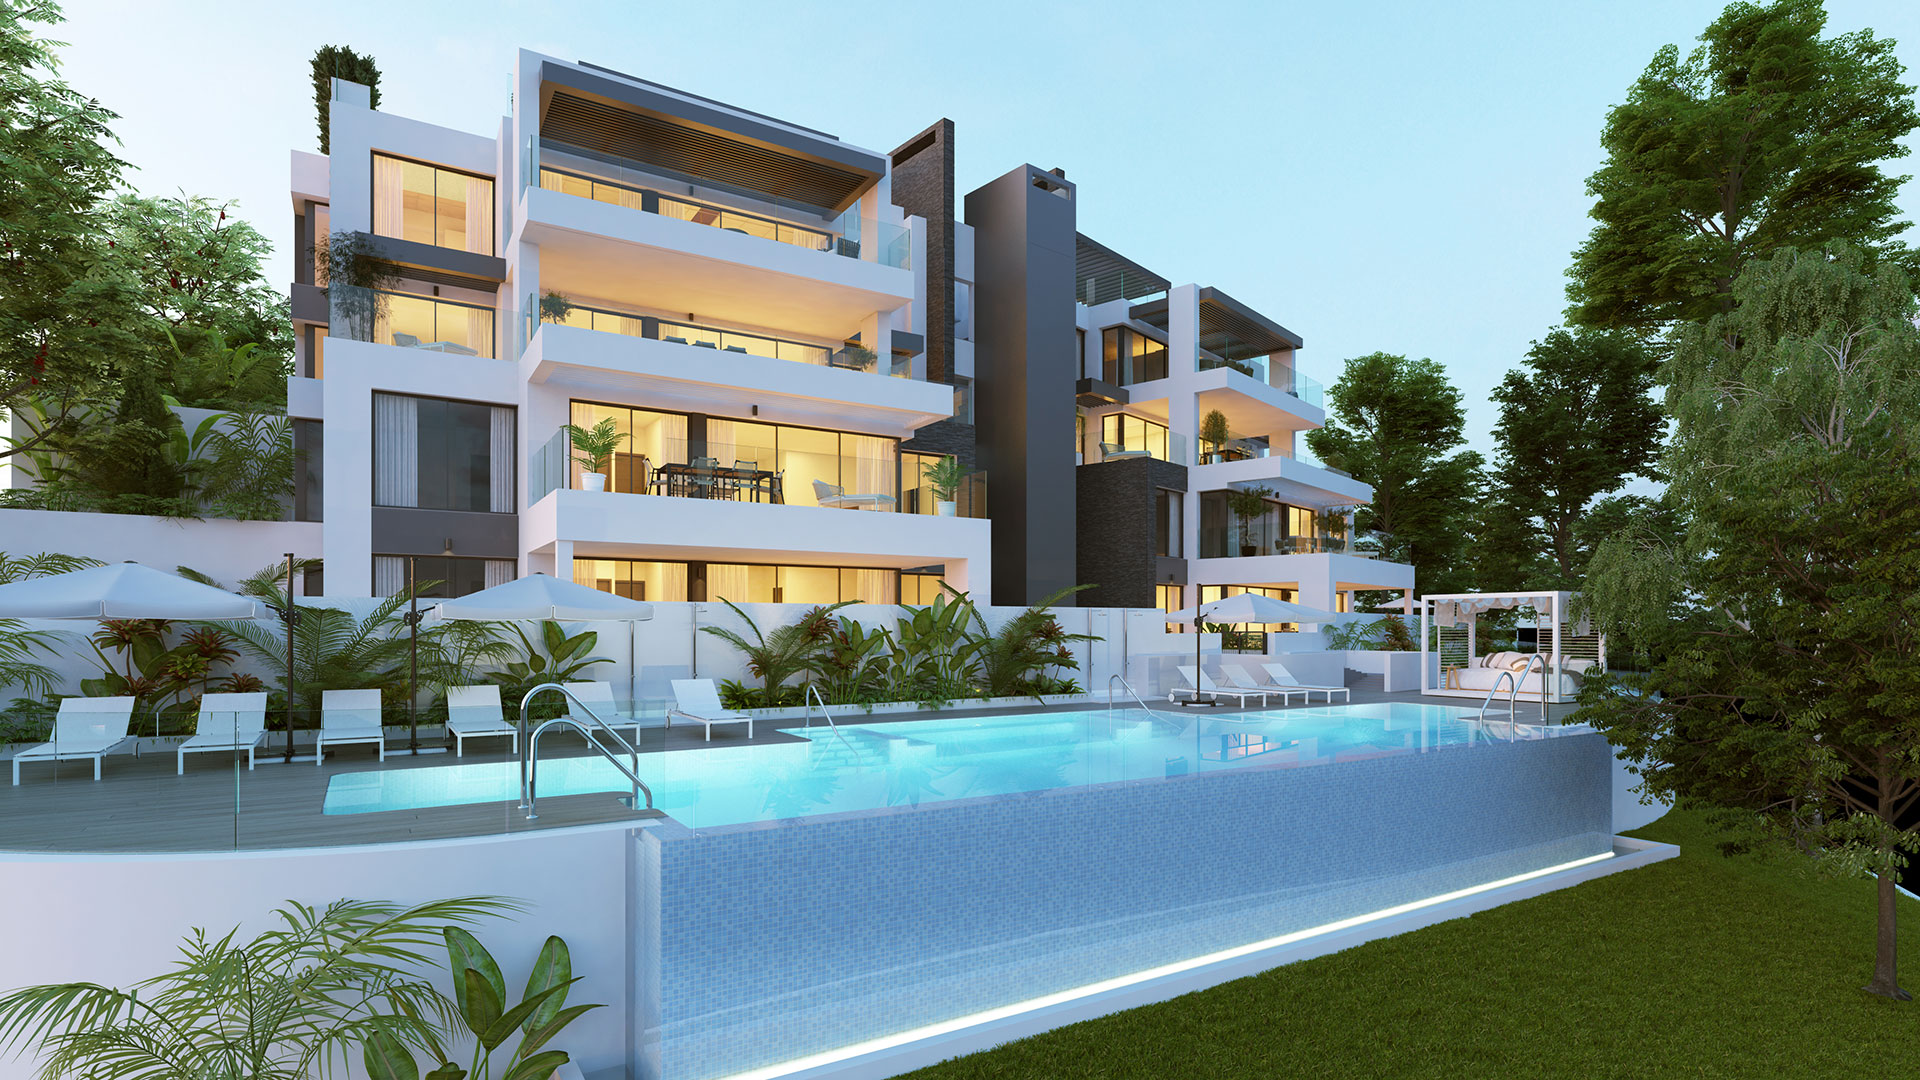 Unique development of exclusive apartments and penthouses with 2, 3 and 4 bedrooms.